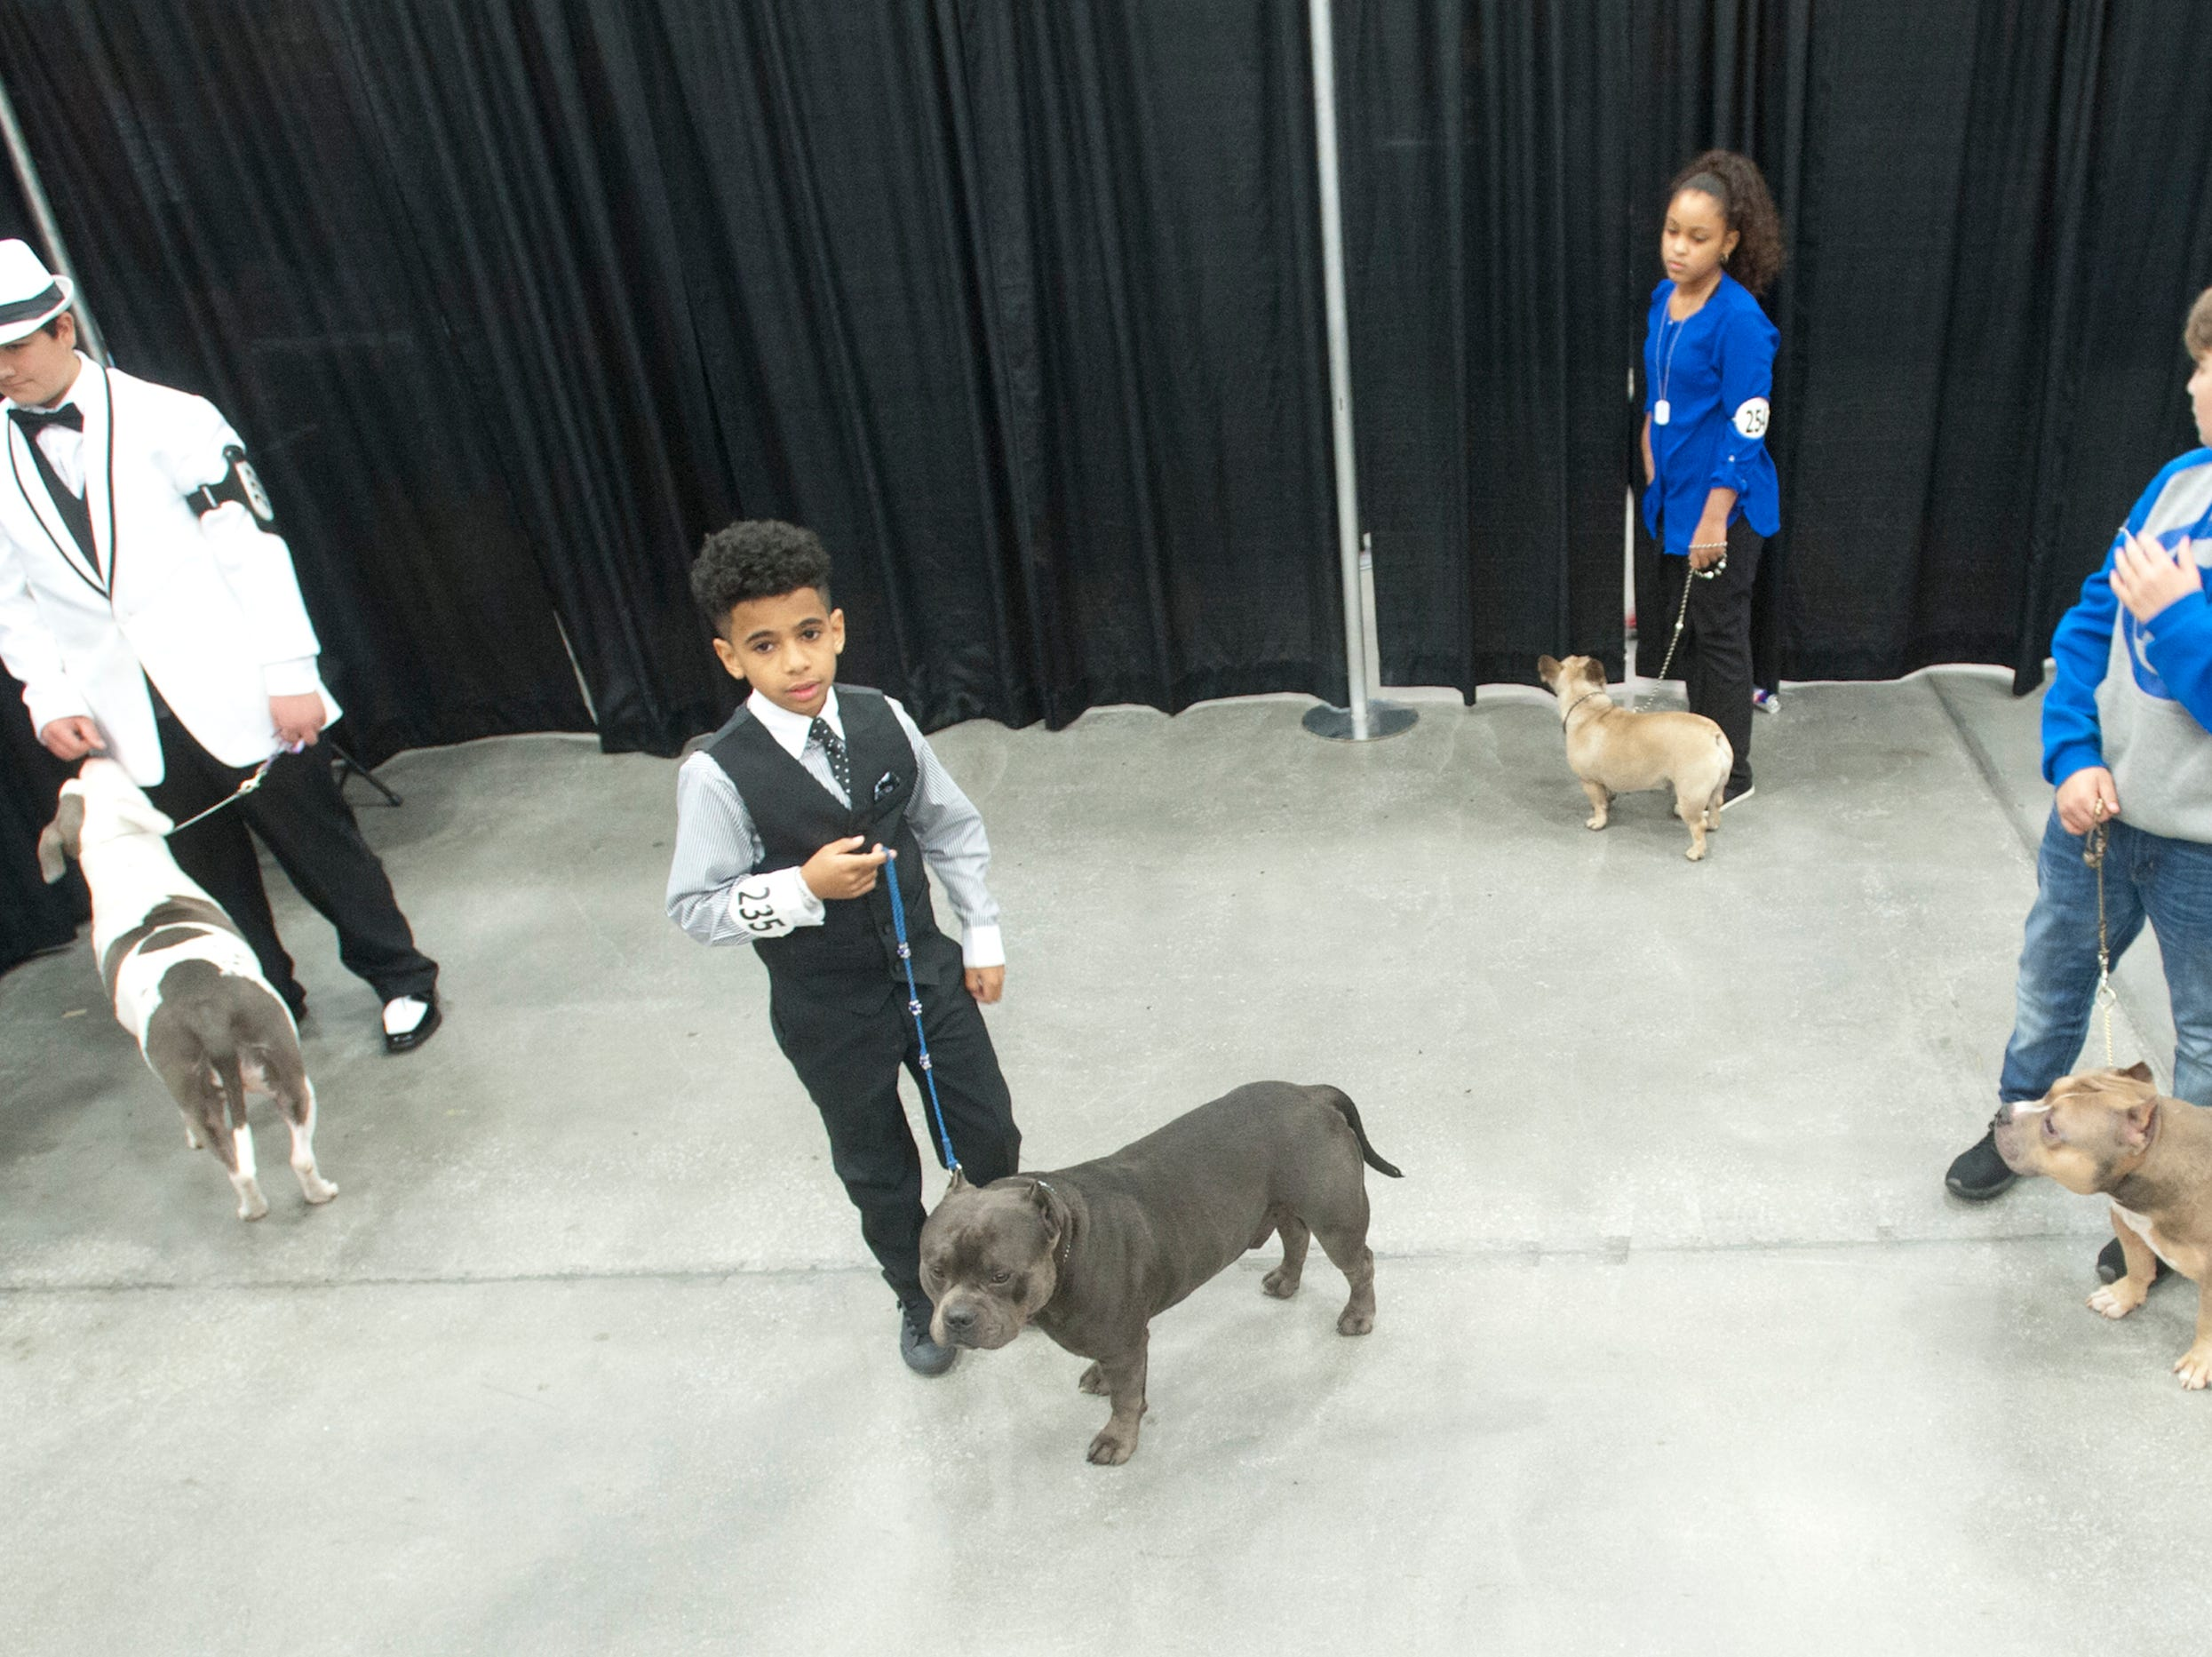 Junior handlers wait to enter the judging ring at the 2018 American Bully Kennel Club's 12th annual confirmation event at the Kentucky Convention Center in Louisville.November 10, 2018